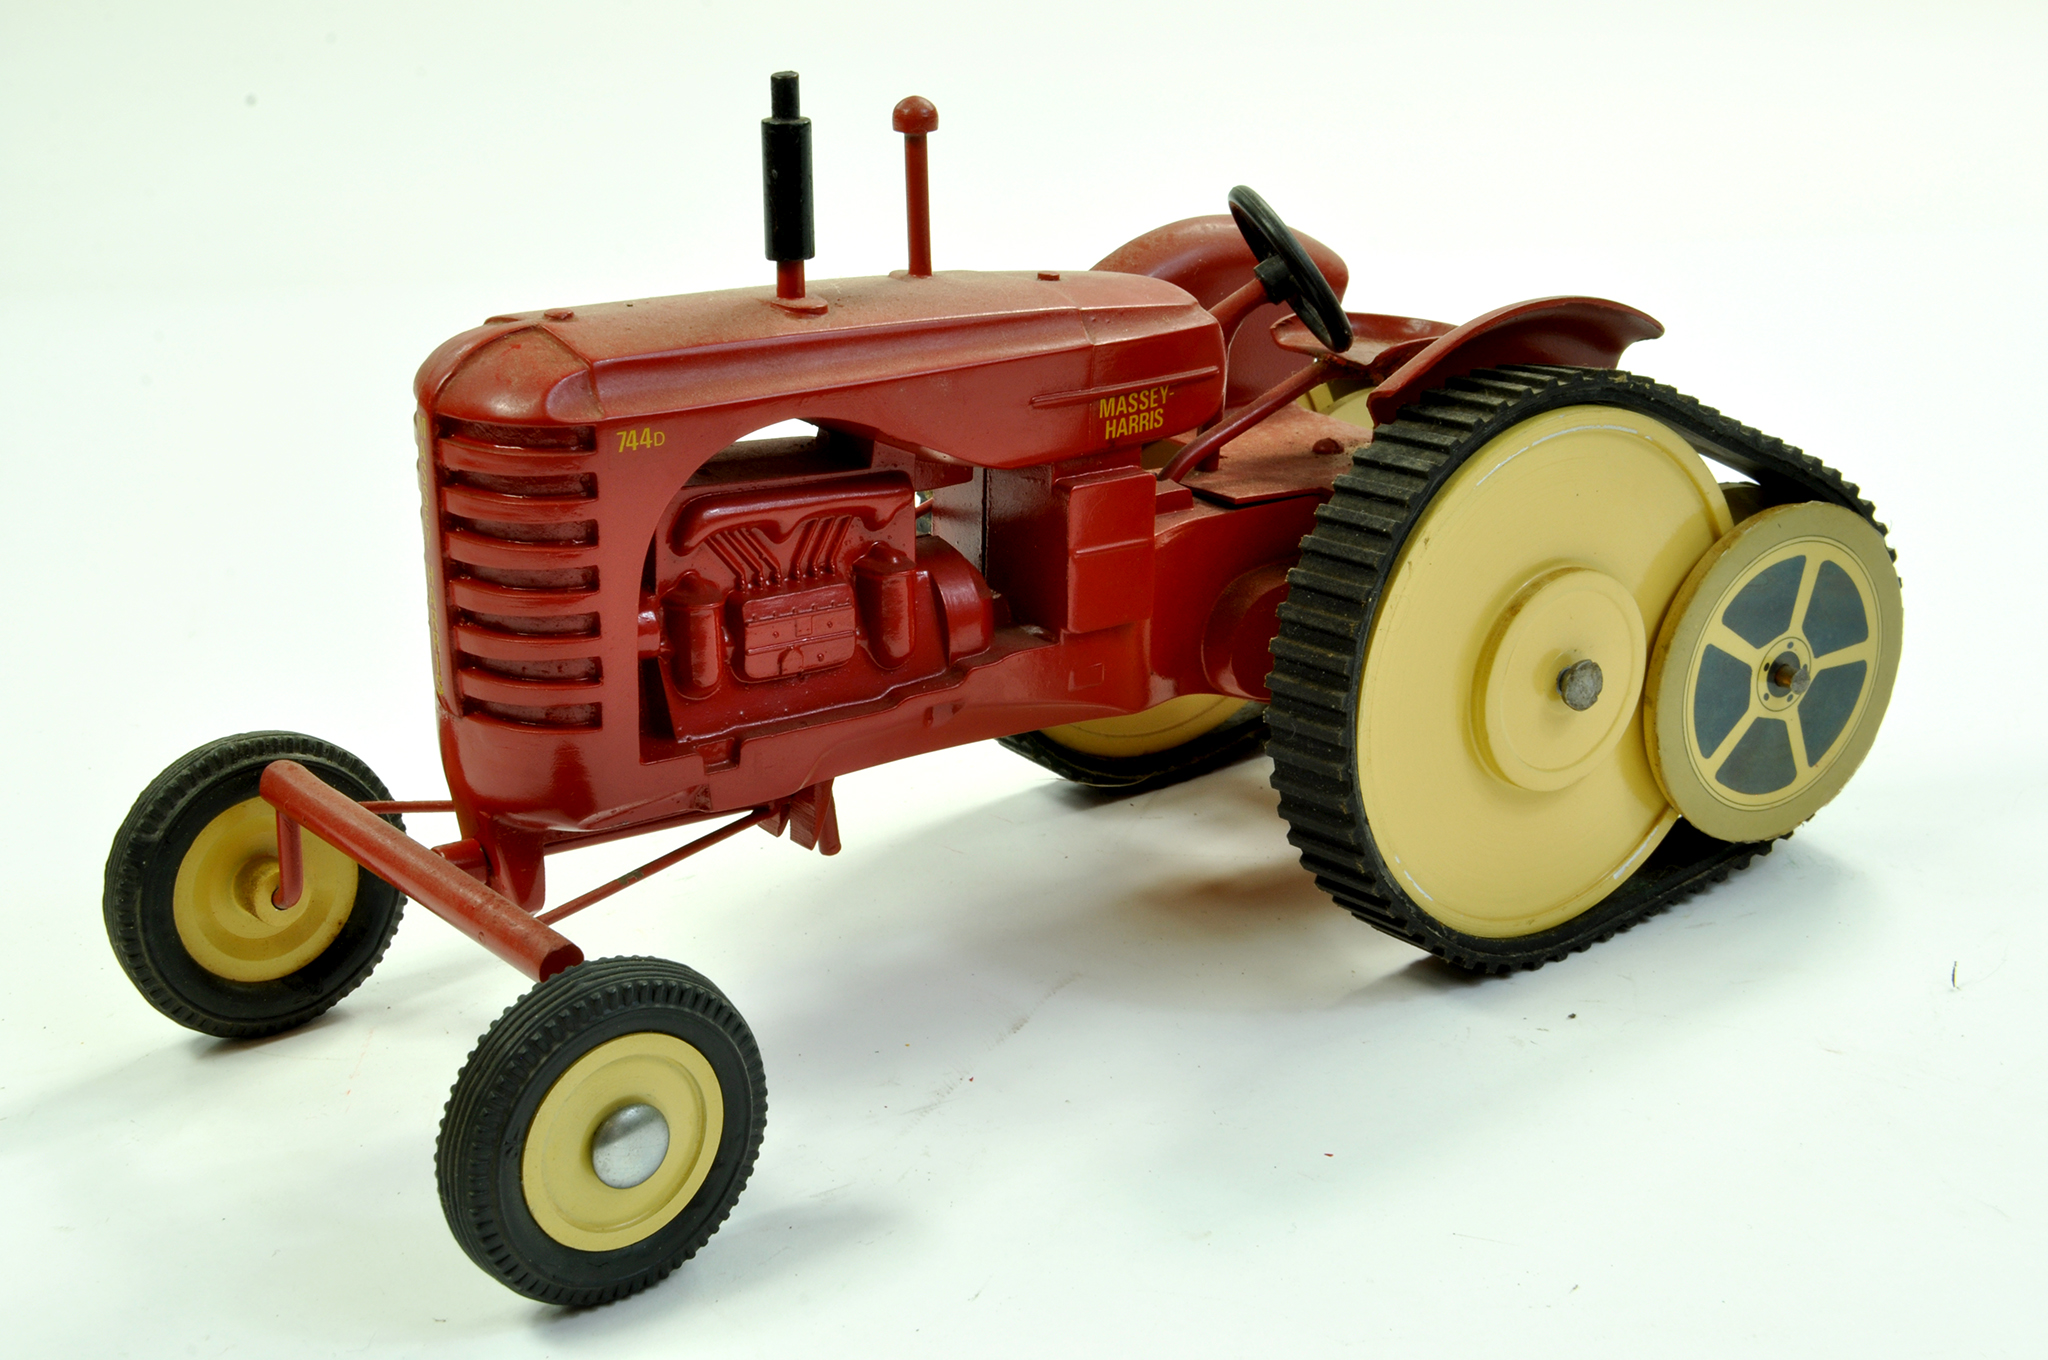 Lot 31 - Marbil Models 1/16 Massey Harris 744D Tractor on Half Tracks. Generally Excellent, a little dusty.